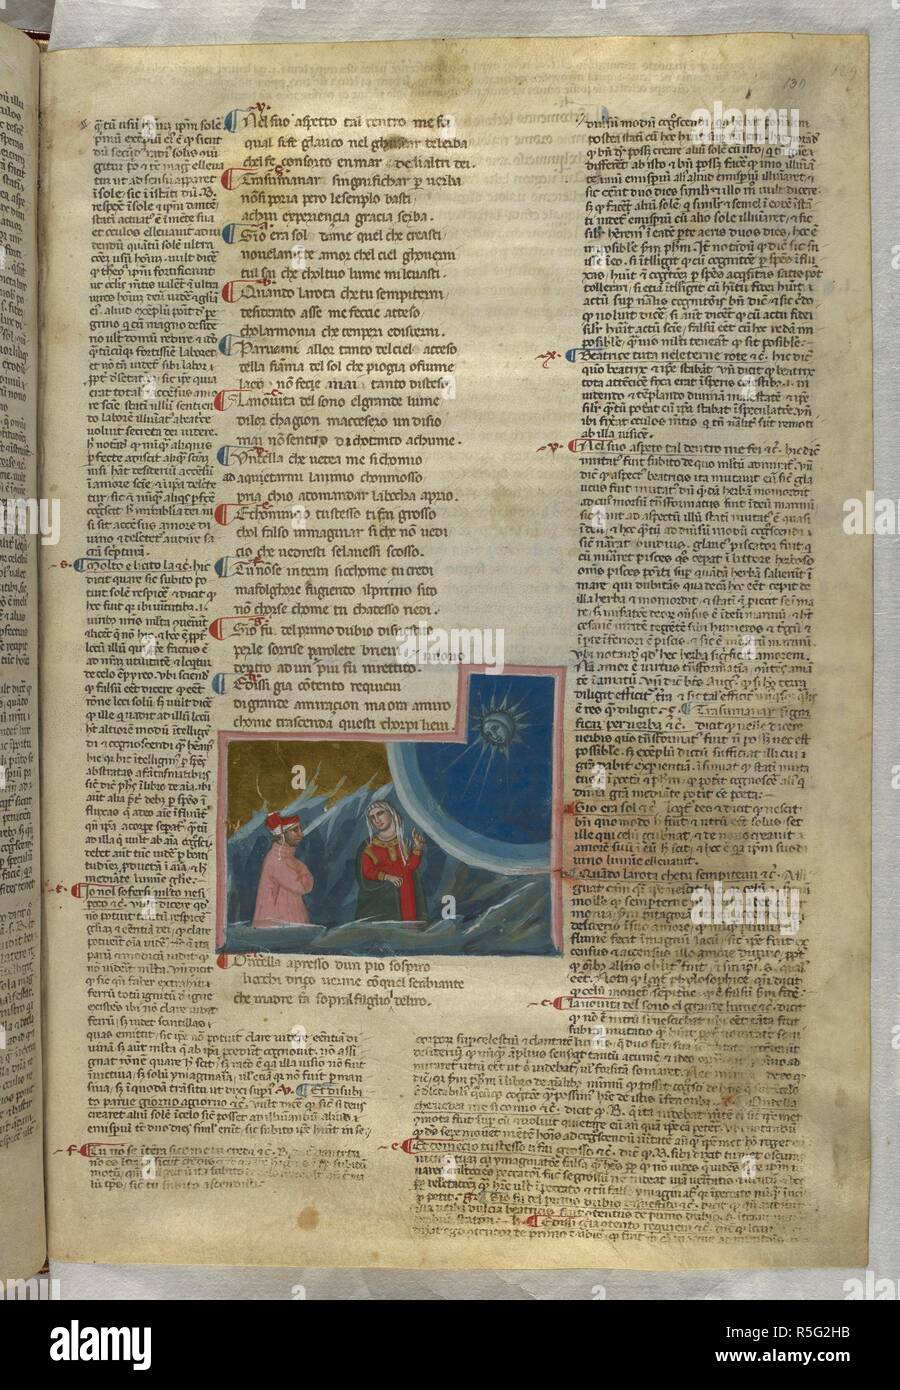 Paradiso : Beatrice explaining the order of the universe to Dante. Dante Alighieri, Divina Commedia ( The Divine Comedy ), with a commentary in Latin. 1st half of the 14th century. Source: Egerton 943, f.130. Language: Italian, Latin. - Stock Image